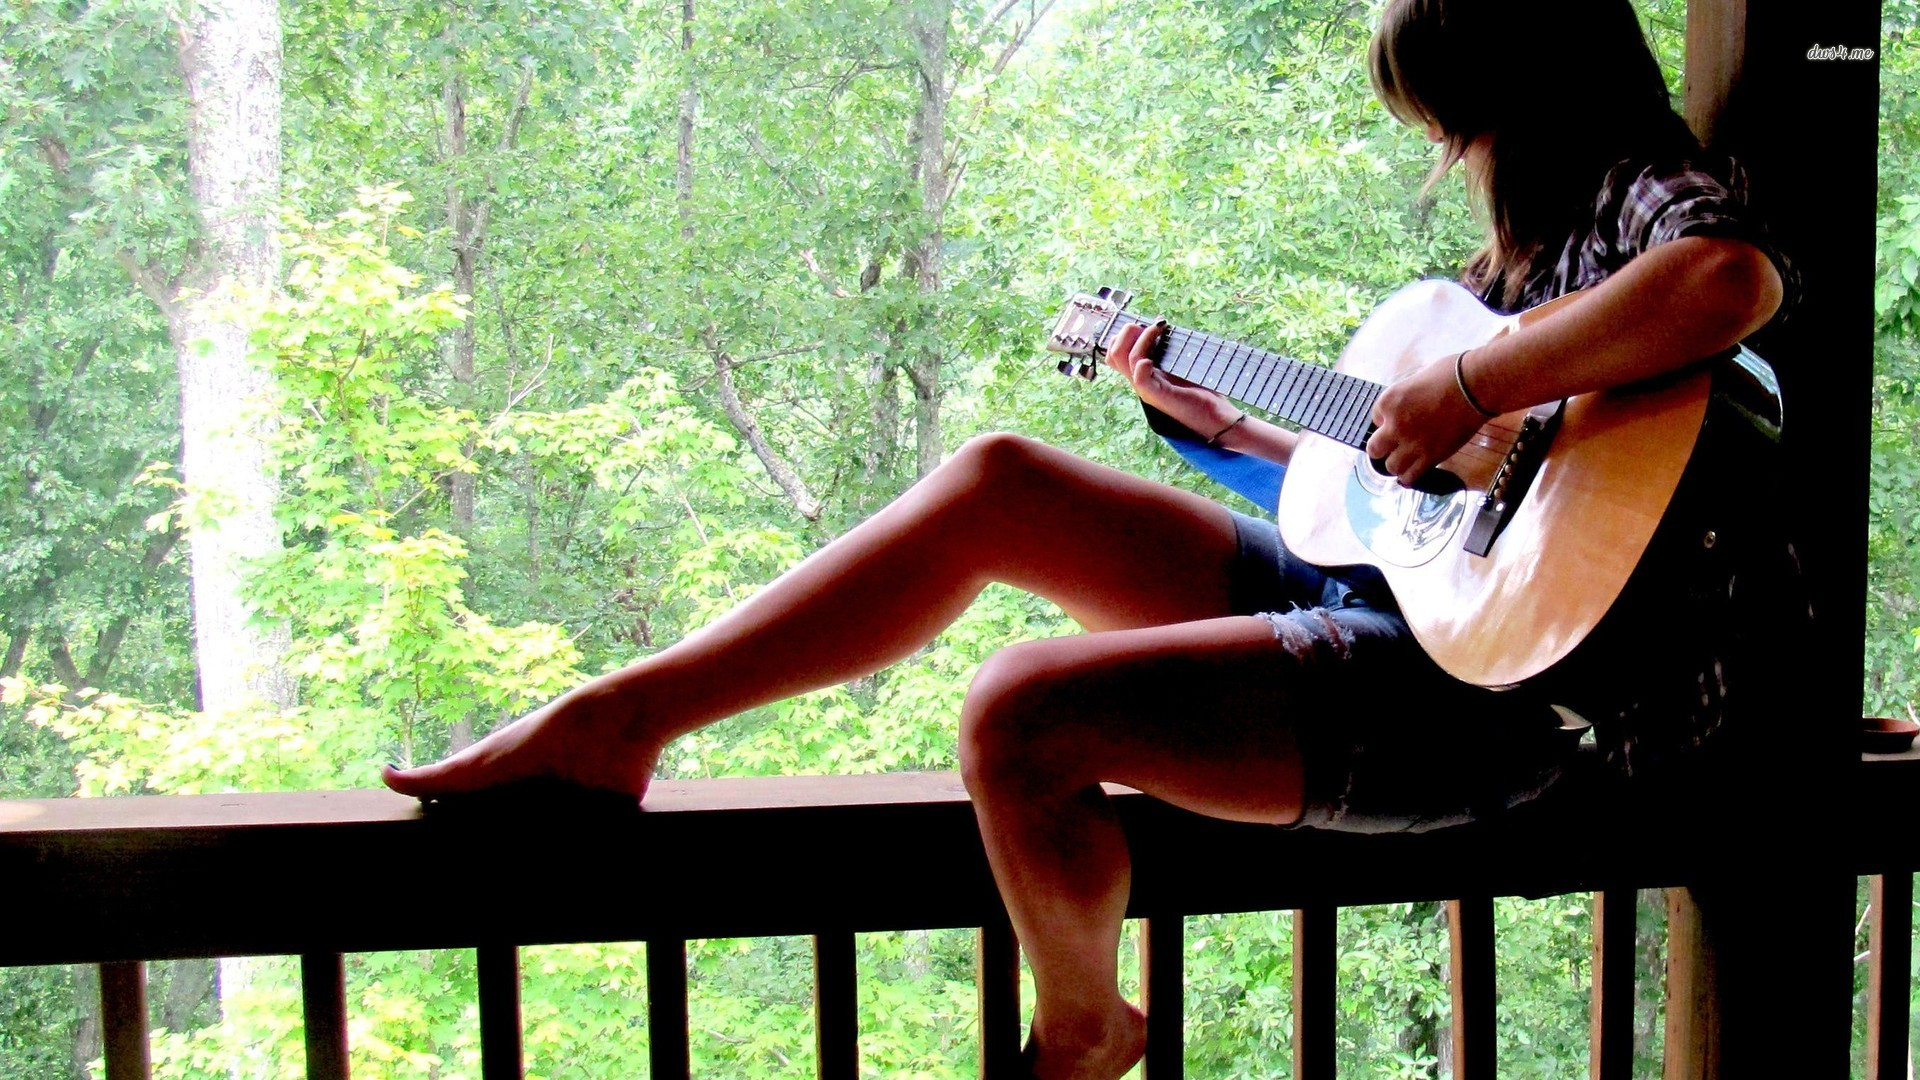 quotes about girl playing guitar 33 quotes. Black Bedroom Furniture Sets. Home Design Ideas